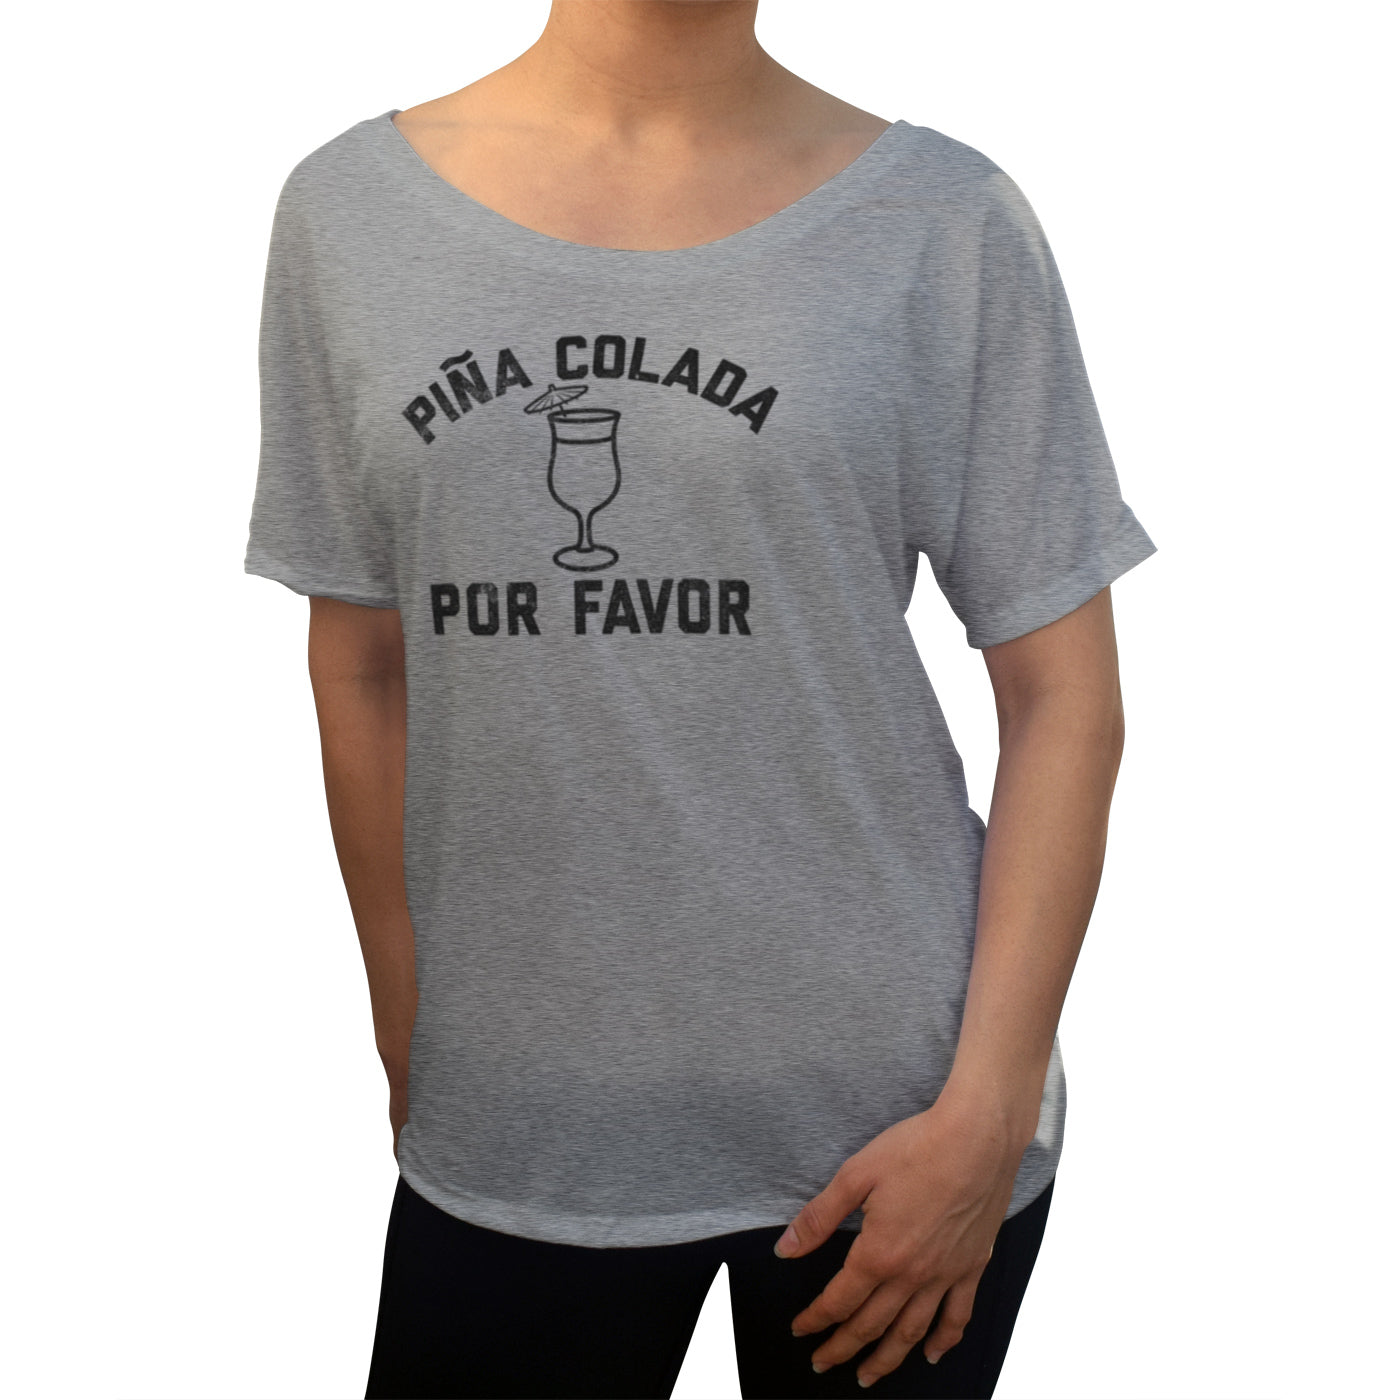 Women's Pina Colada Por Favor Scoop Neck T-Shirt